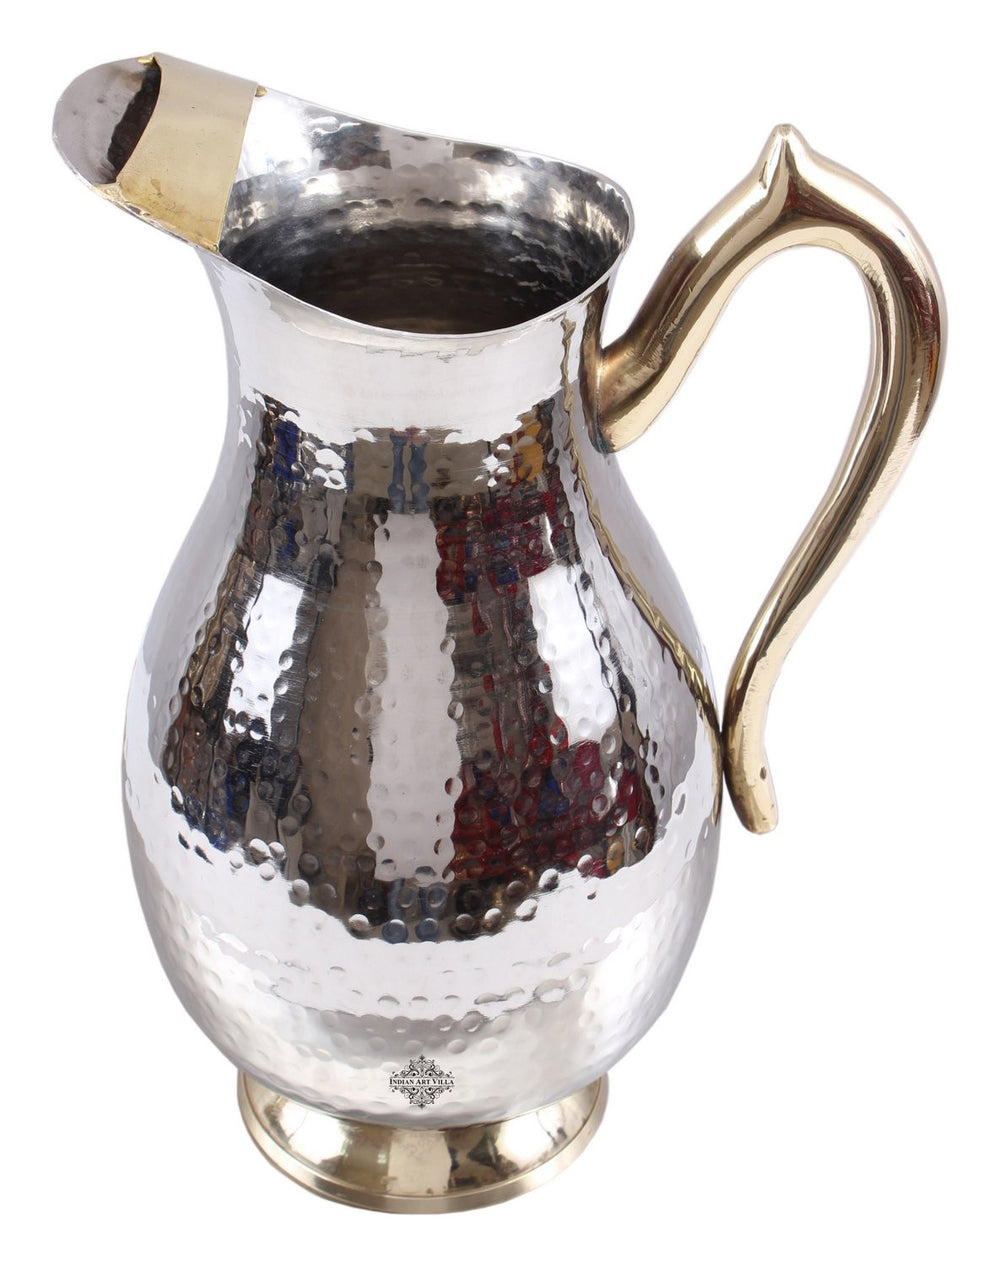 Steel Royal Hammered Design Jug with Brass Handle -1900 ML